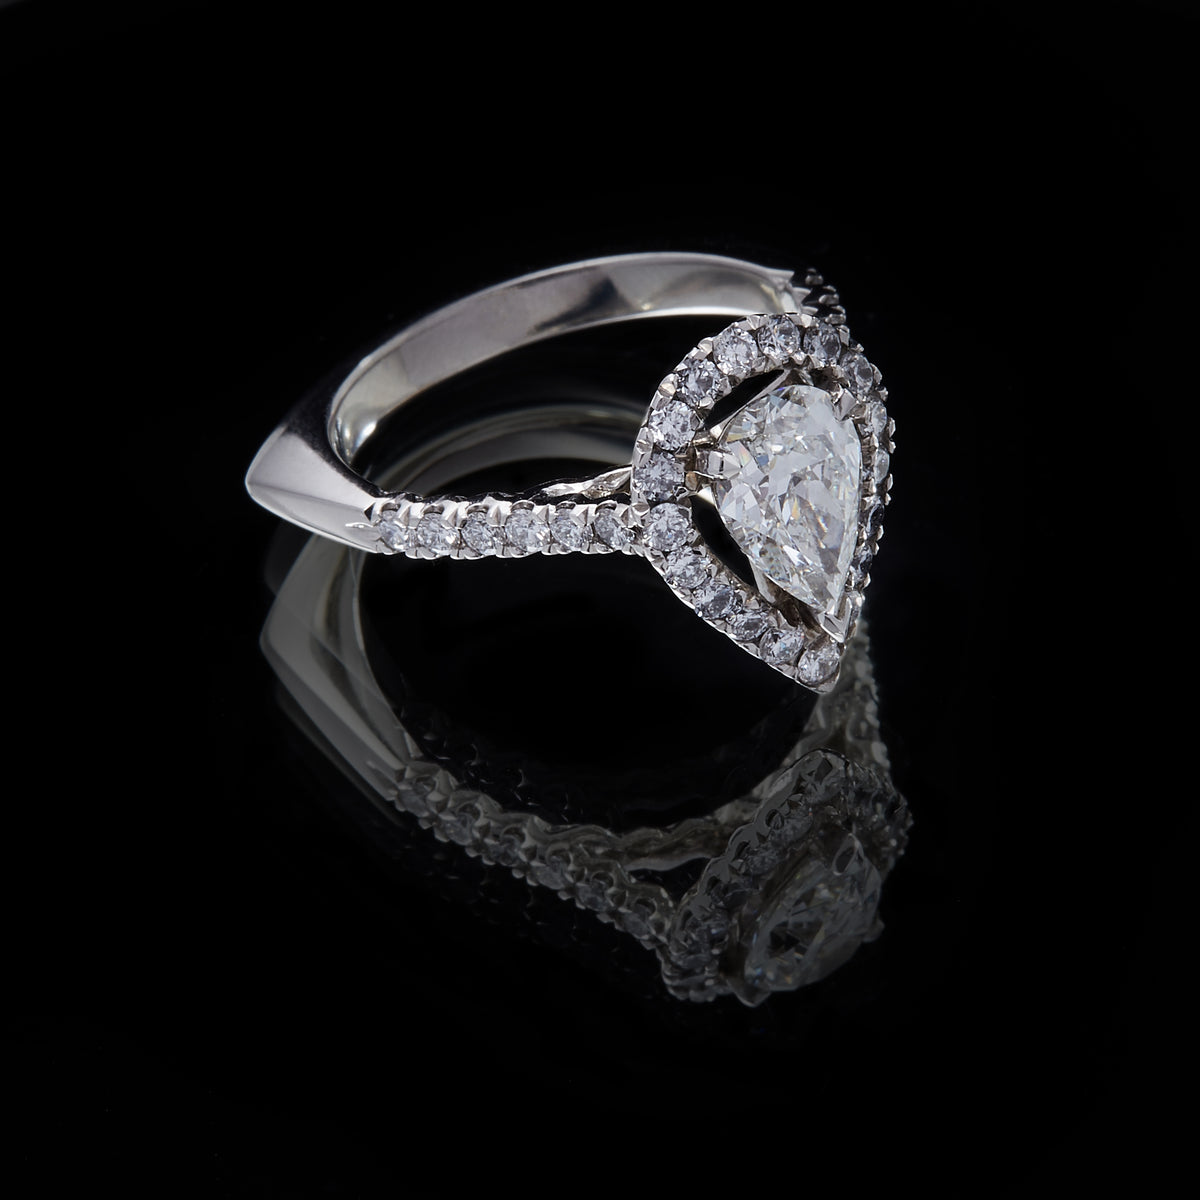 Picture of Platinum Pearshape Diamond Ring with Round Brilliant Cut Diamond Cluster and  Shoulders, three quarter view